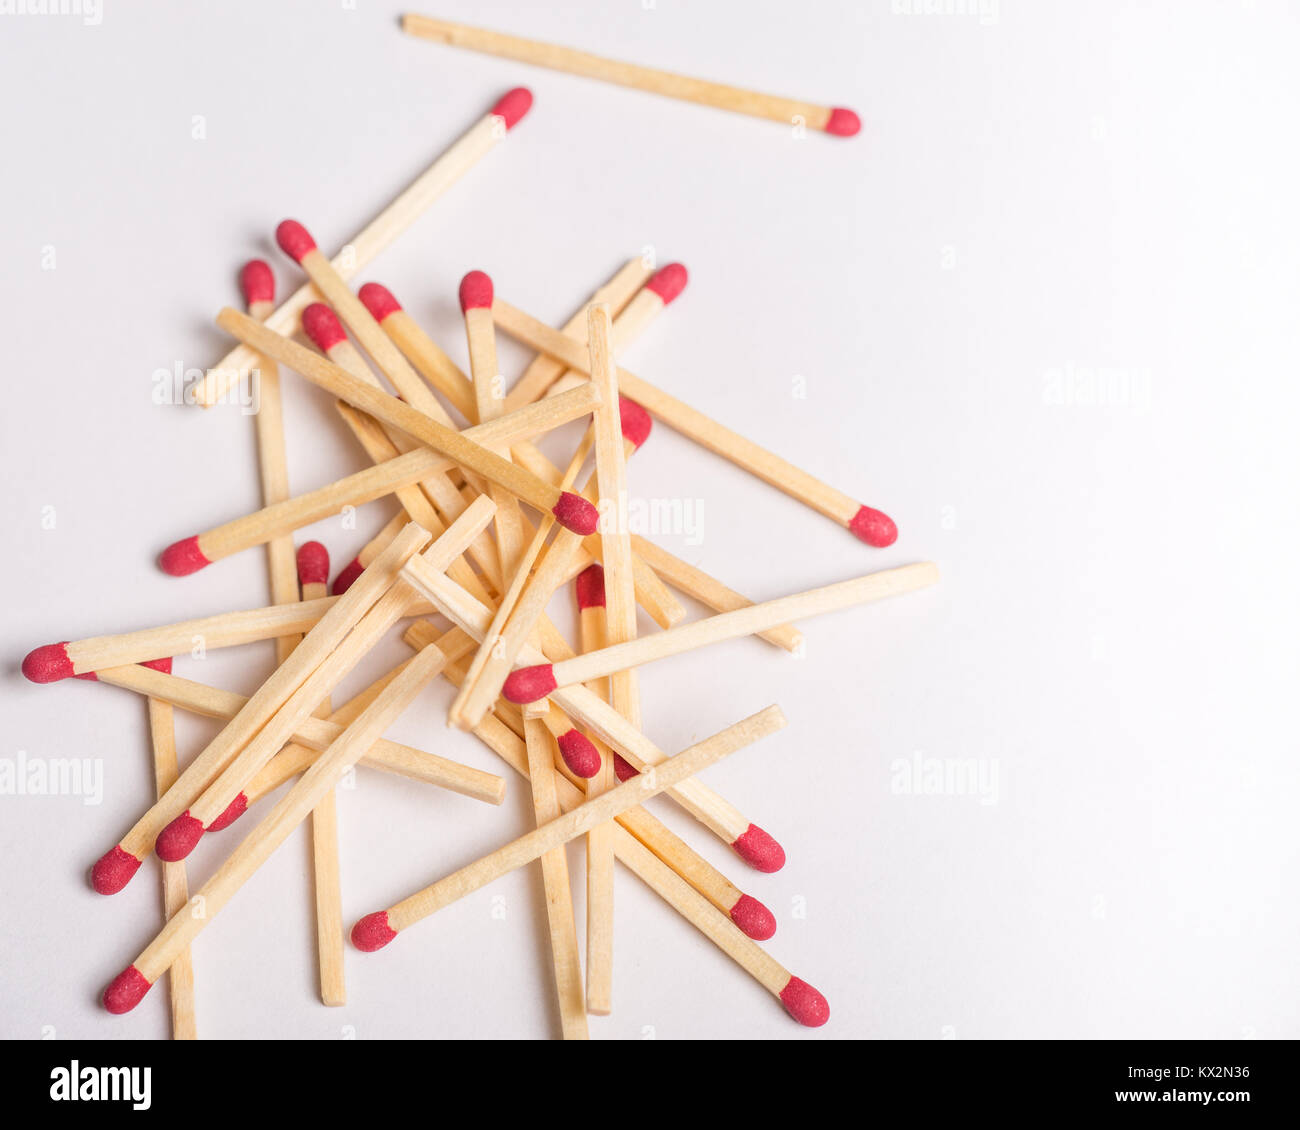 Matches isolated on white background with copy space. - Stock Image